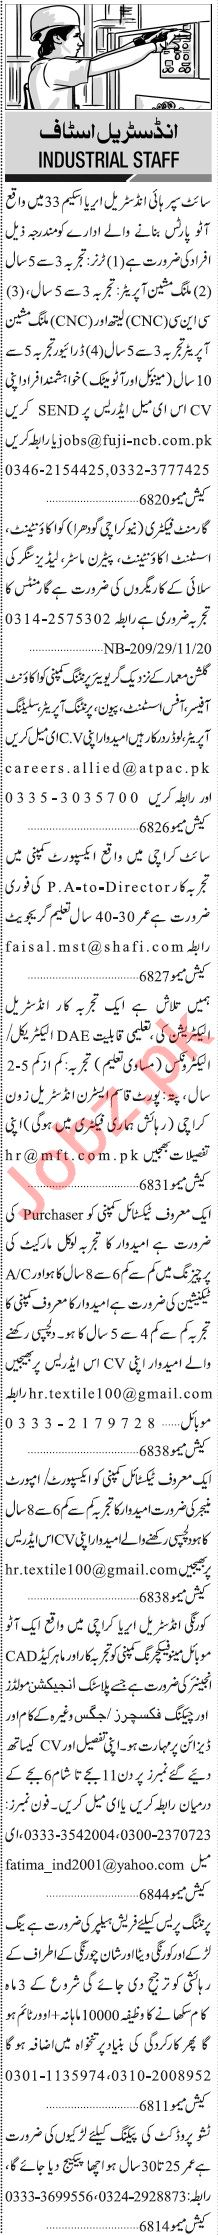 Jang Sunday Classified Ads 29 Nov 2020 for Industrial Staff